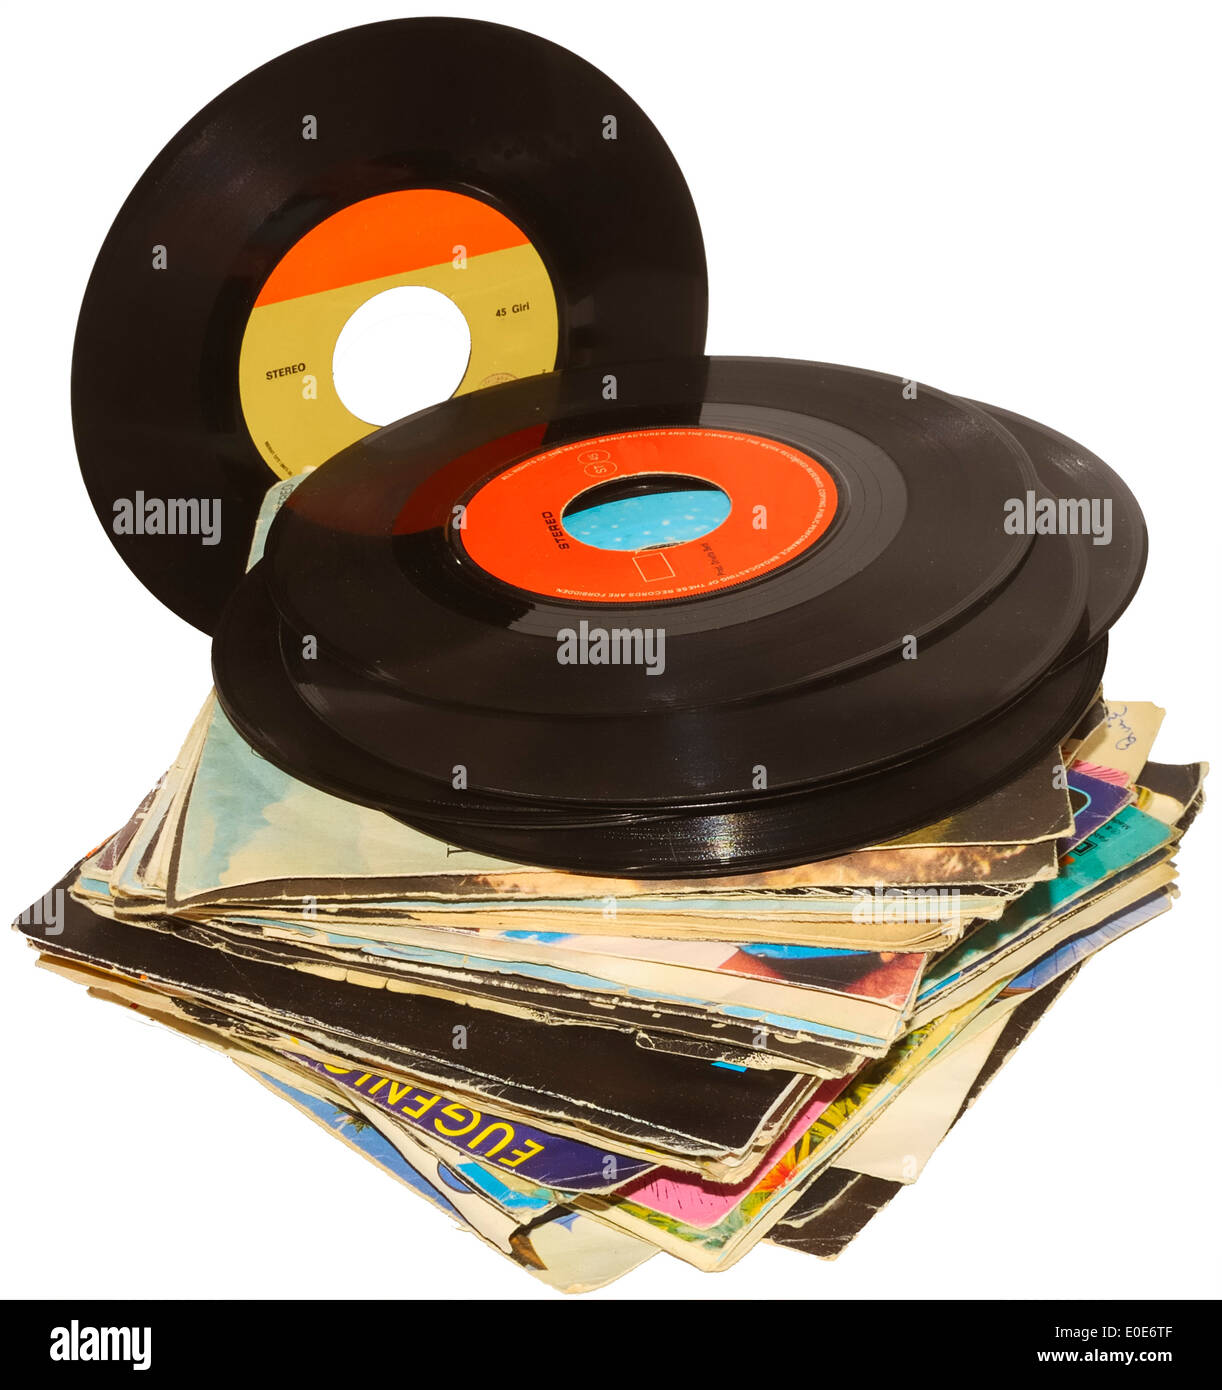 A pile of 45 RPM vinyl records used and dirty even if in good condition - Stock Image